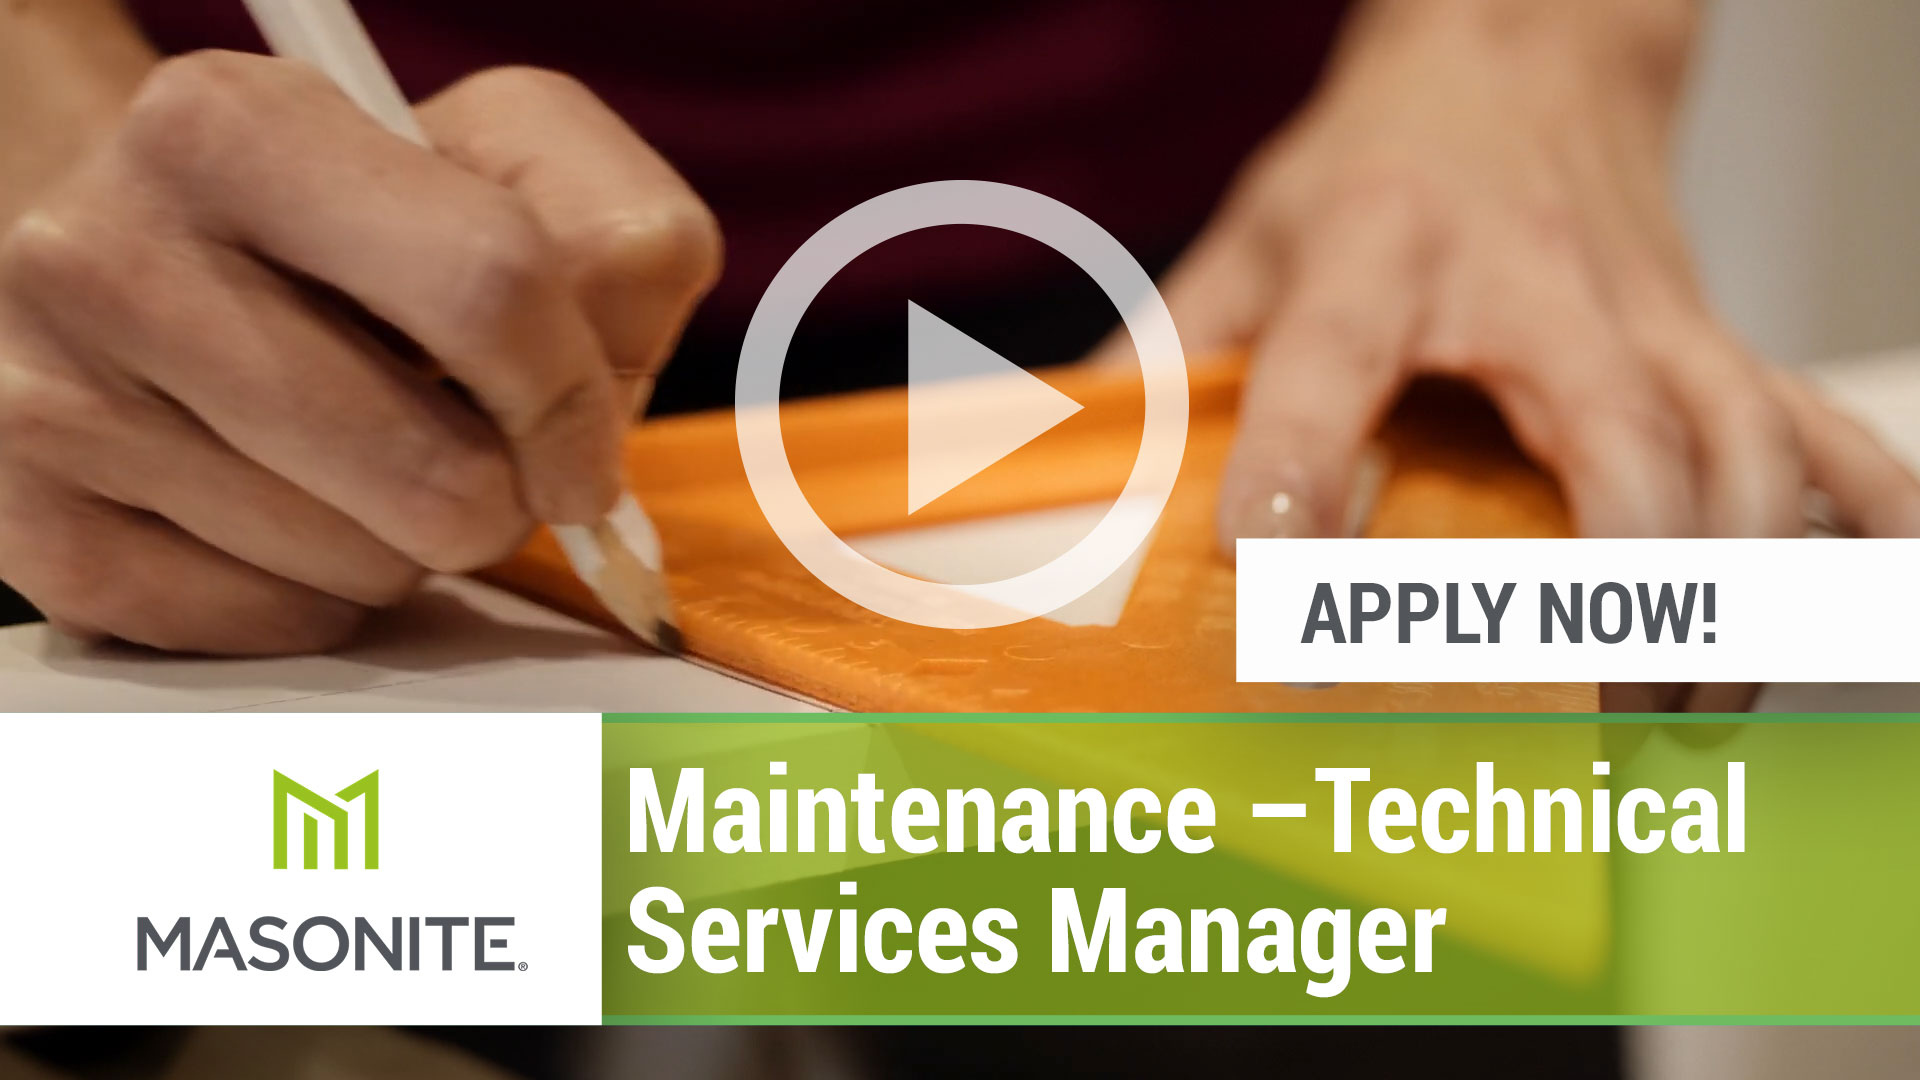 Watch our careers video for available job opening Maintenance - Technical Services Manager in Marshfield, WI USA